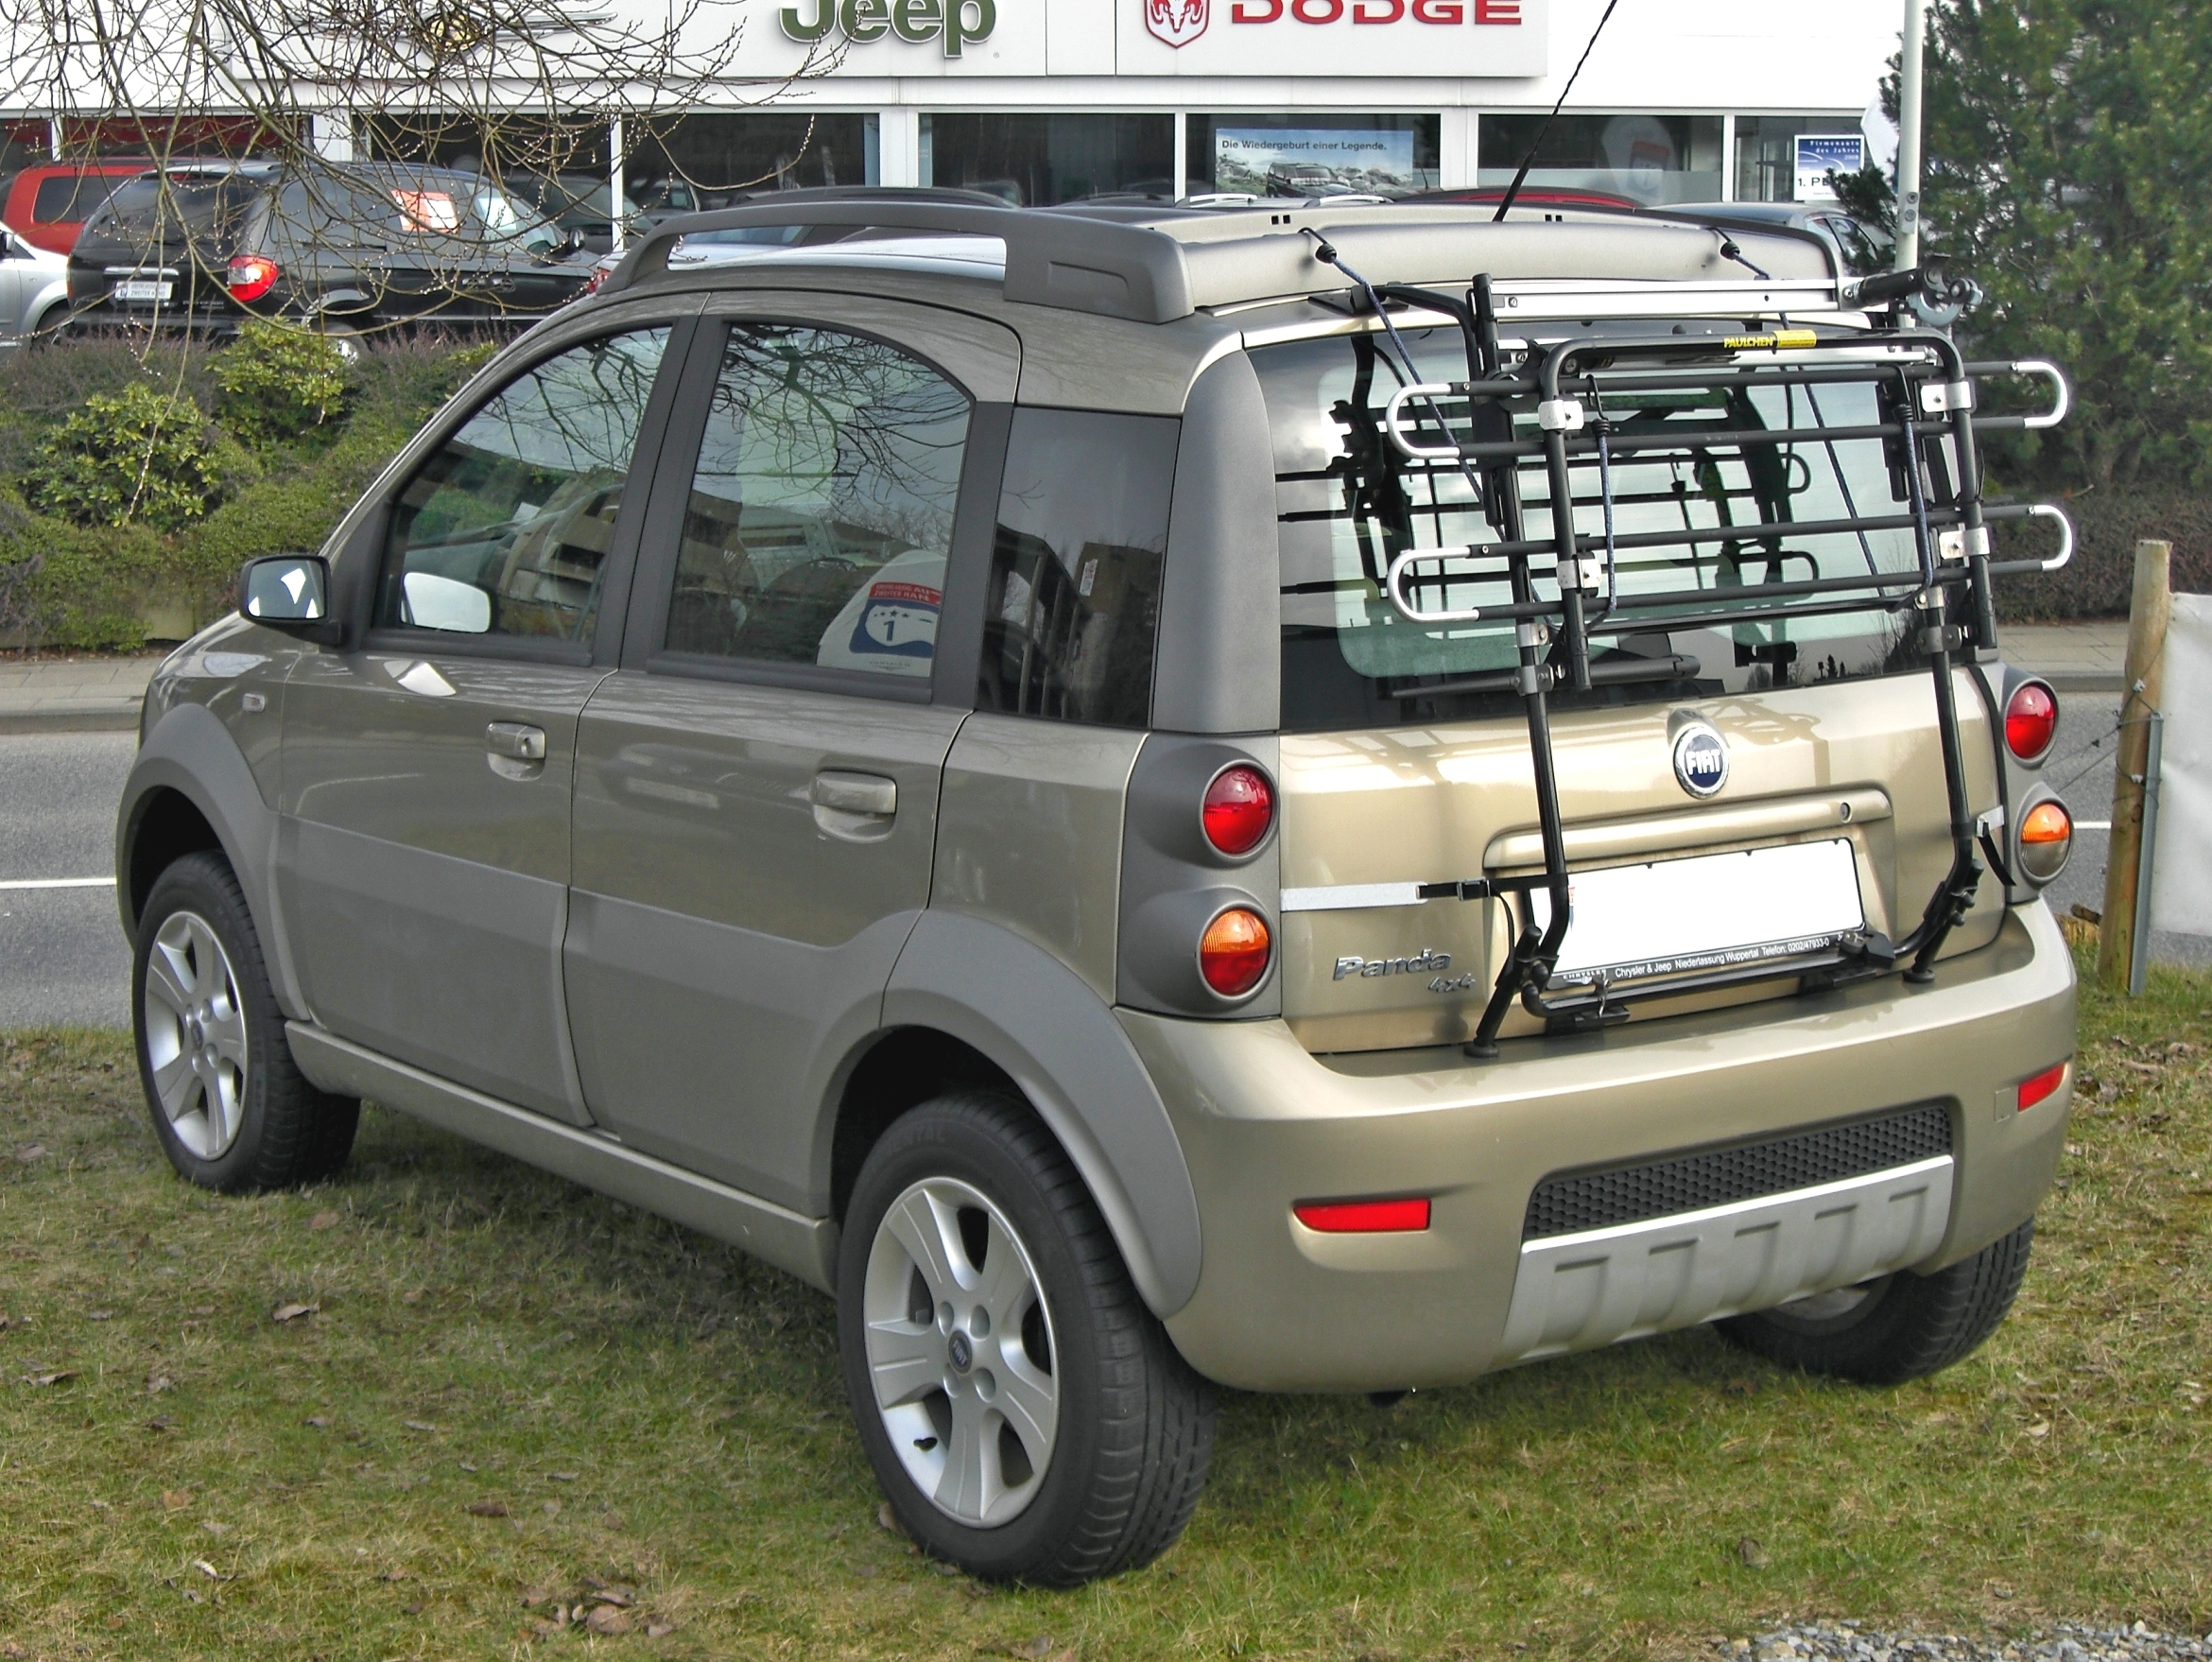 Fiat Wuppertal File Fiat Panda 4x4 20090301 Rear Jpg Wikimedia Commons